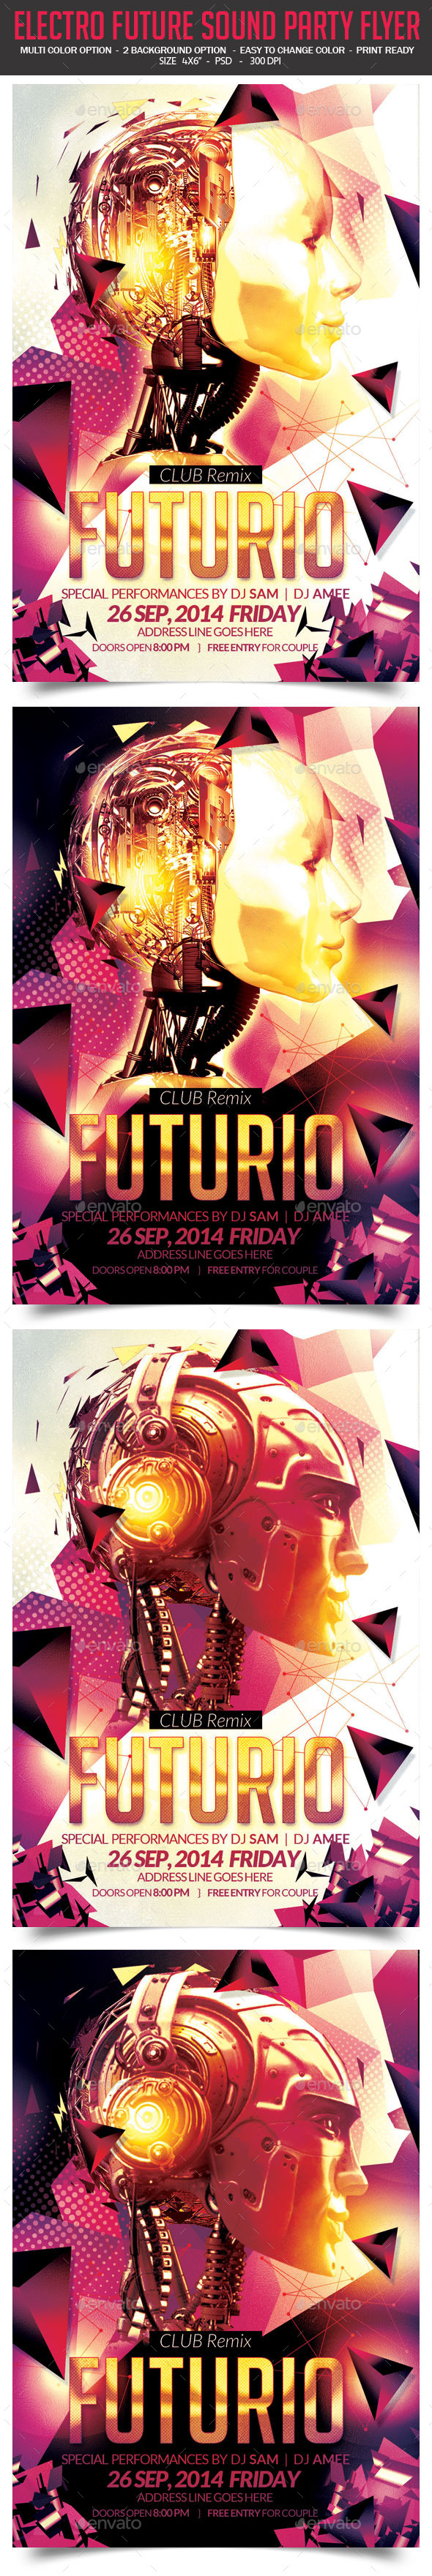 GraphicRiver Electro Future Sound Party Flyer 8955942